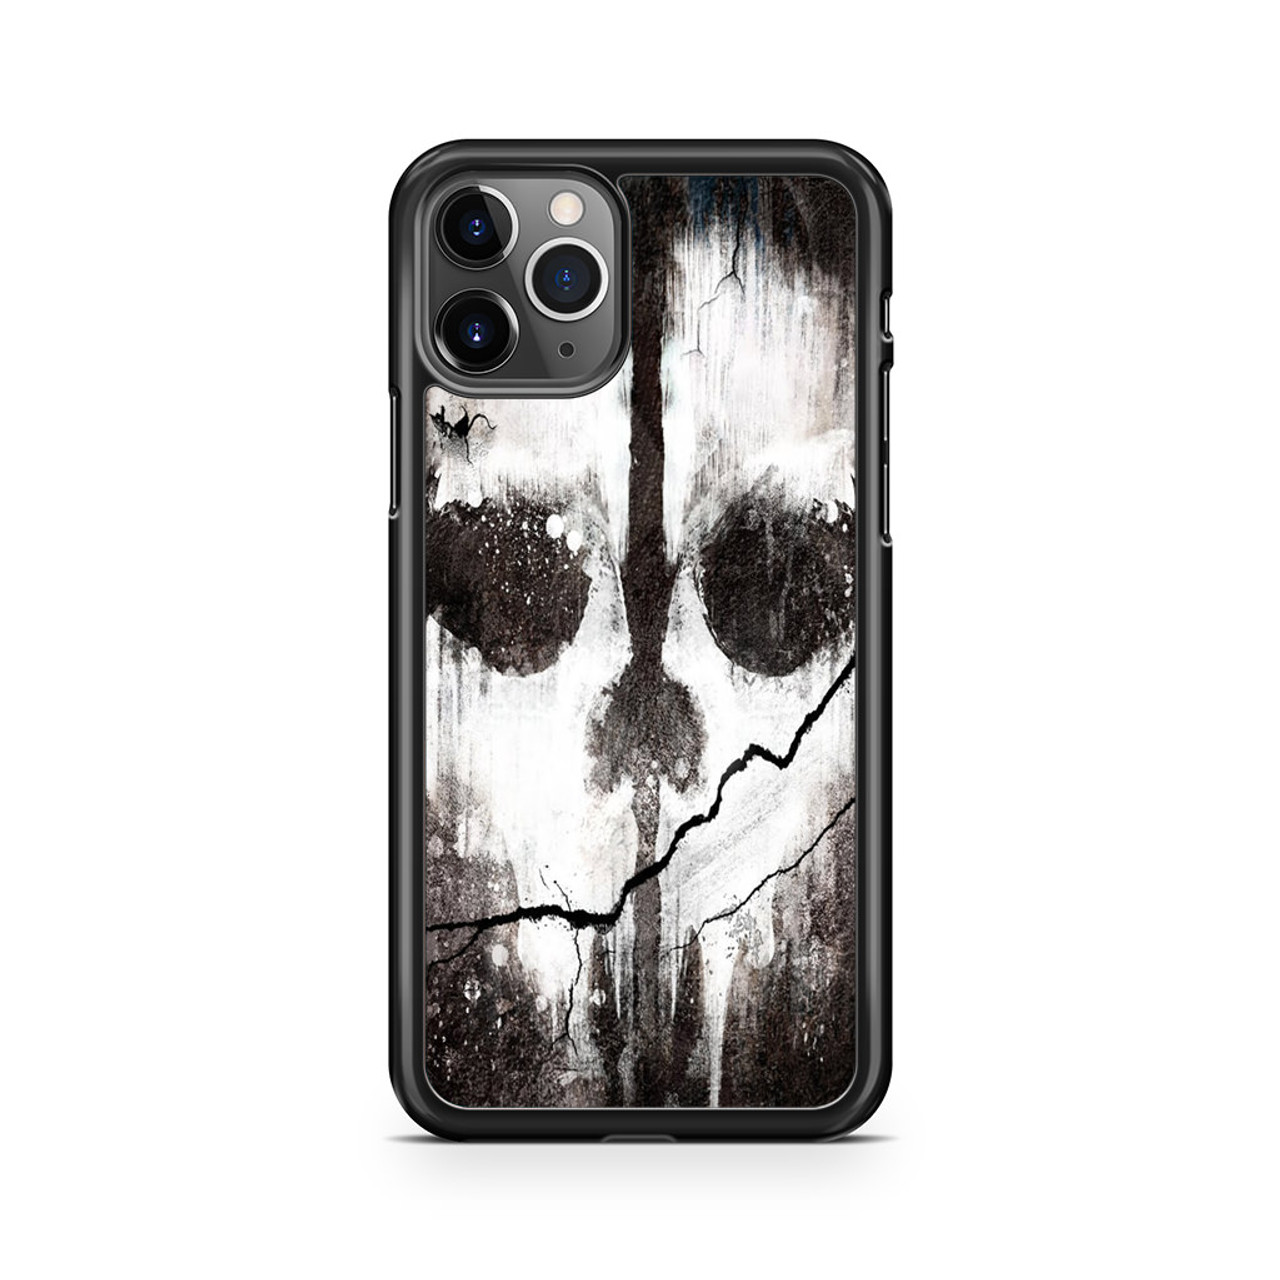 Call of Duty Ghosts iphone case